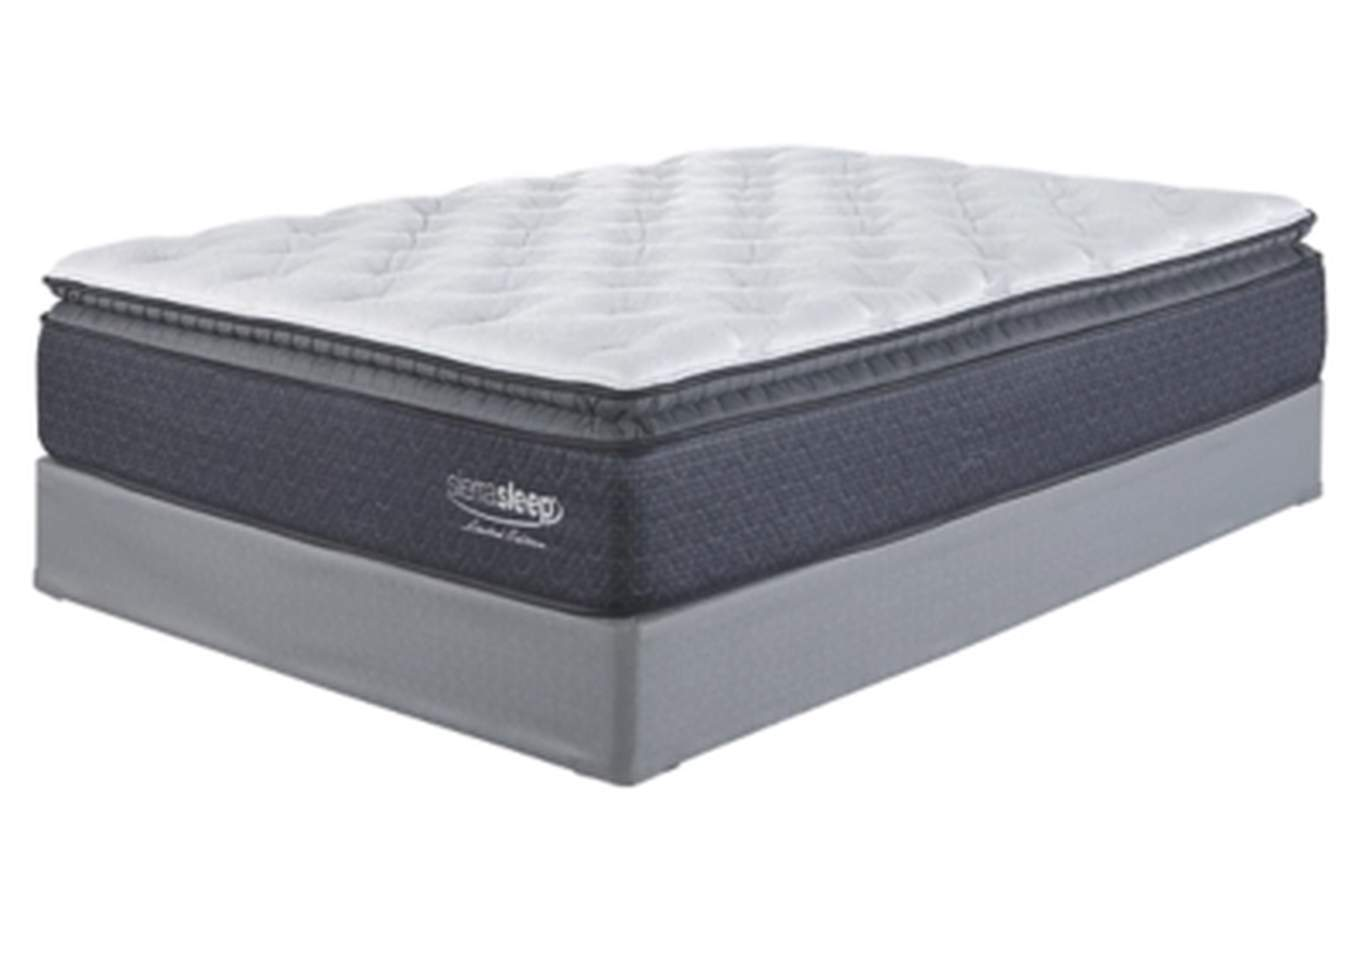 Limited Edition Pillowtop White Full Mattress w/Foundation,Sierra Sleep by Ashley